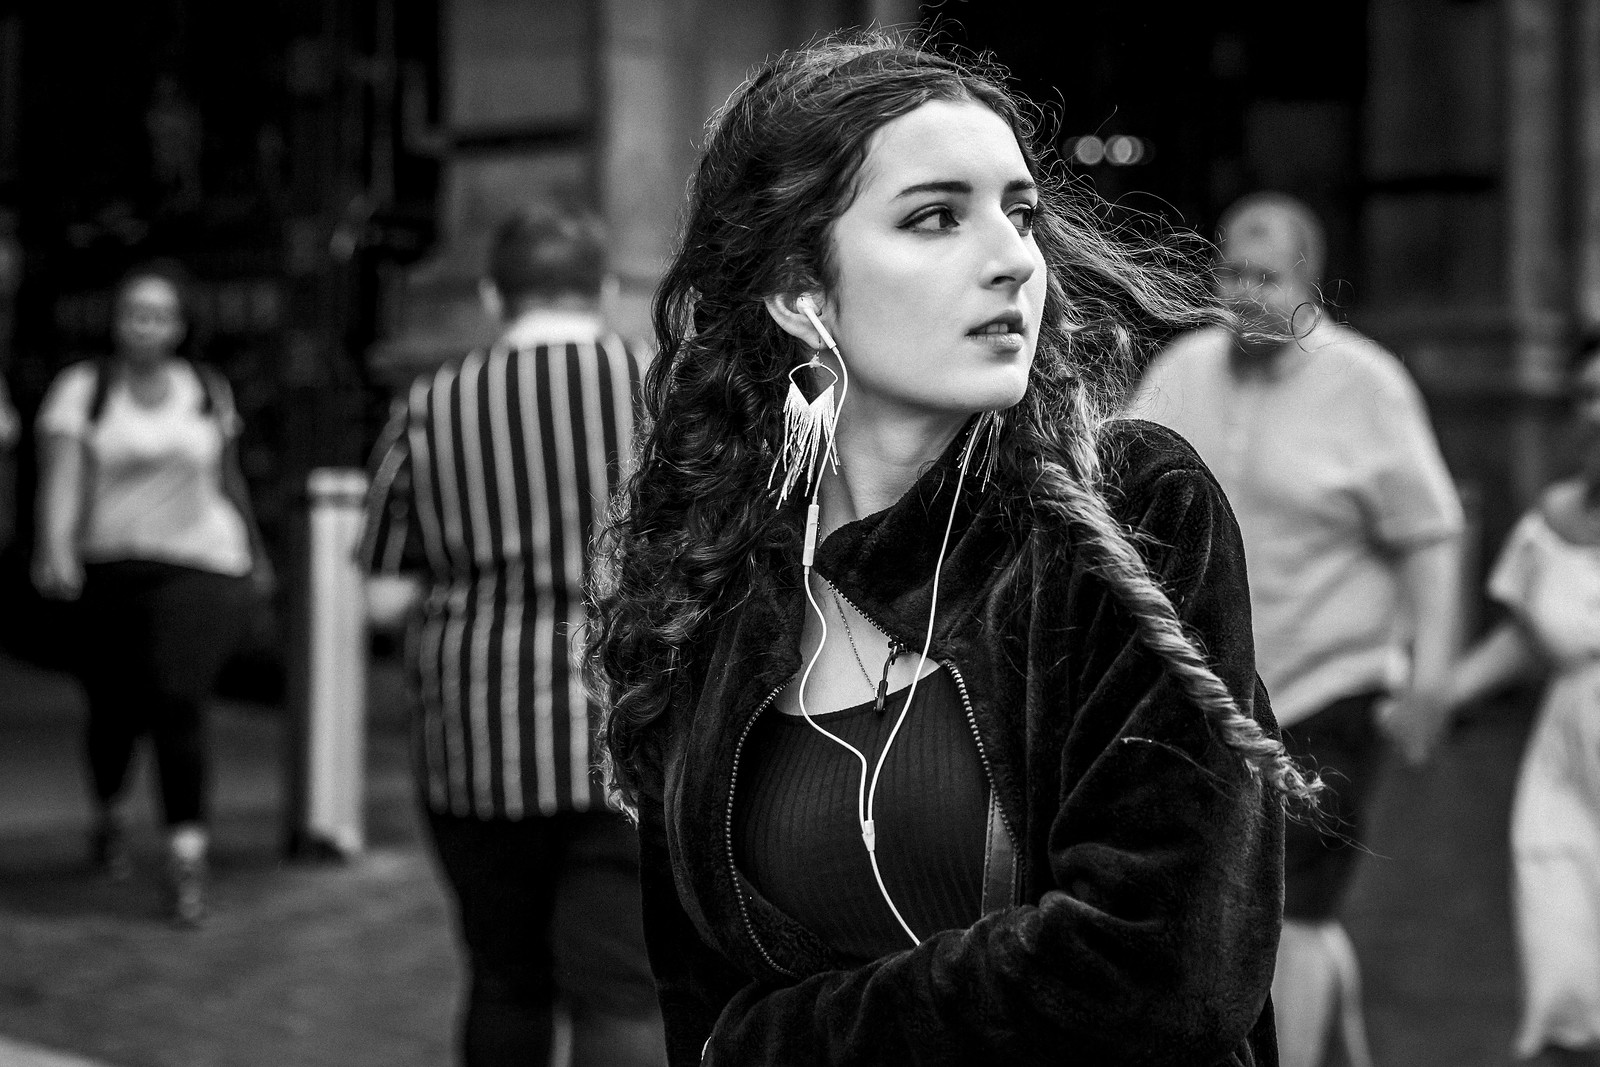 candid photography look back girl by leanne boulton